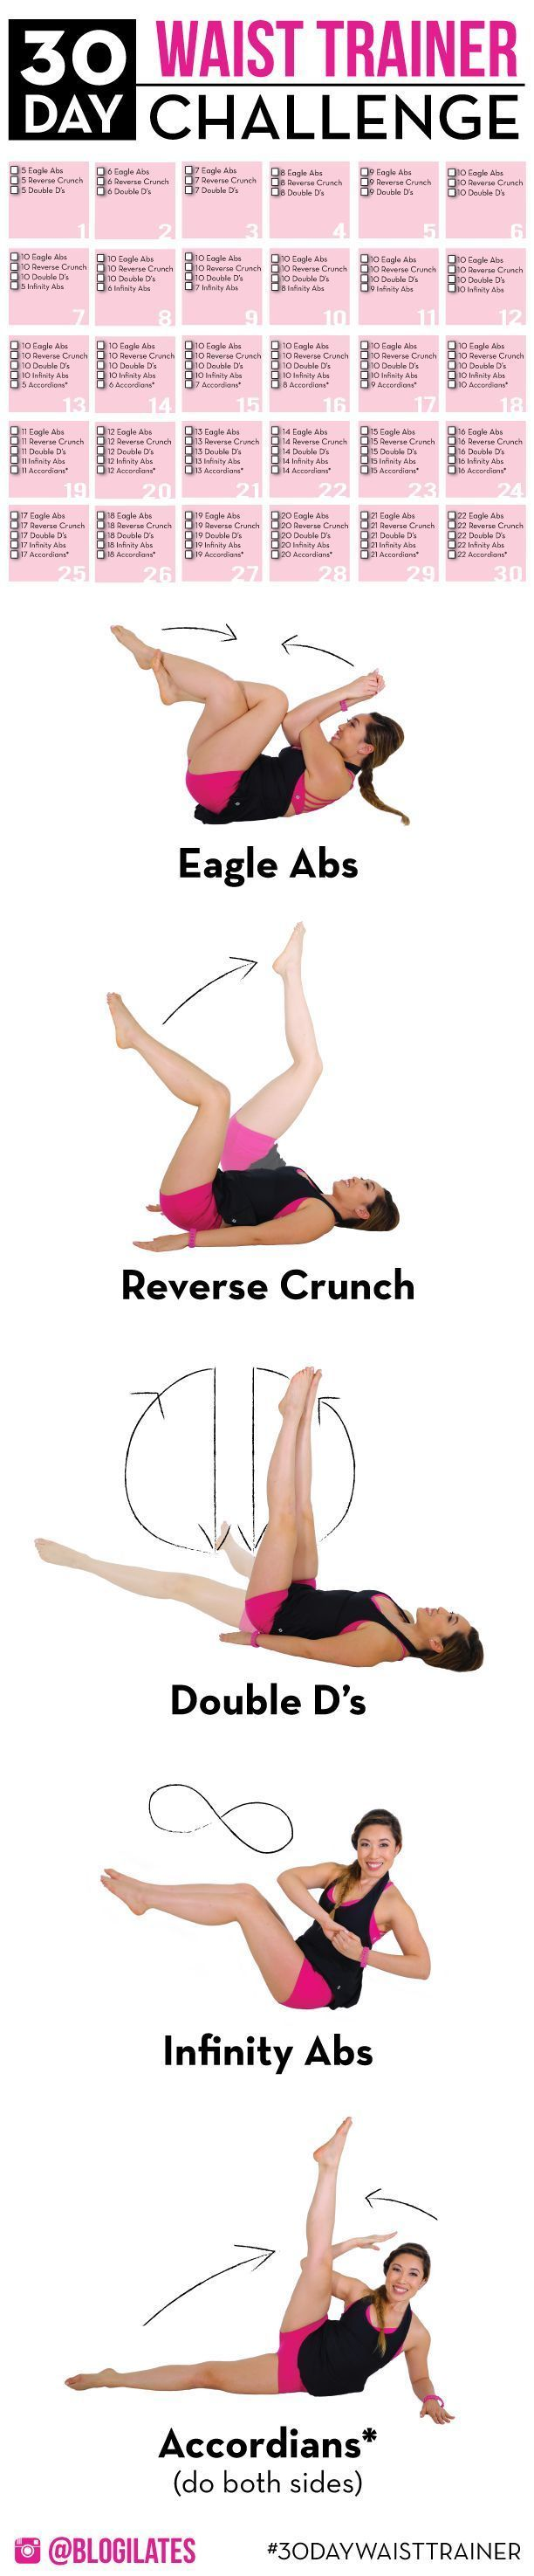 how to lose weight really fast, weight loss secrets, losing weight diet - This is the 30 Day Waist Trainer Challenge Workout - Forget wearing those silly waist trainers (which are basically modern day corsets). This will help you tighten the muscle fibers of your own NATURAL CORSET! Your core! So easy to start, but gets harder as you go.